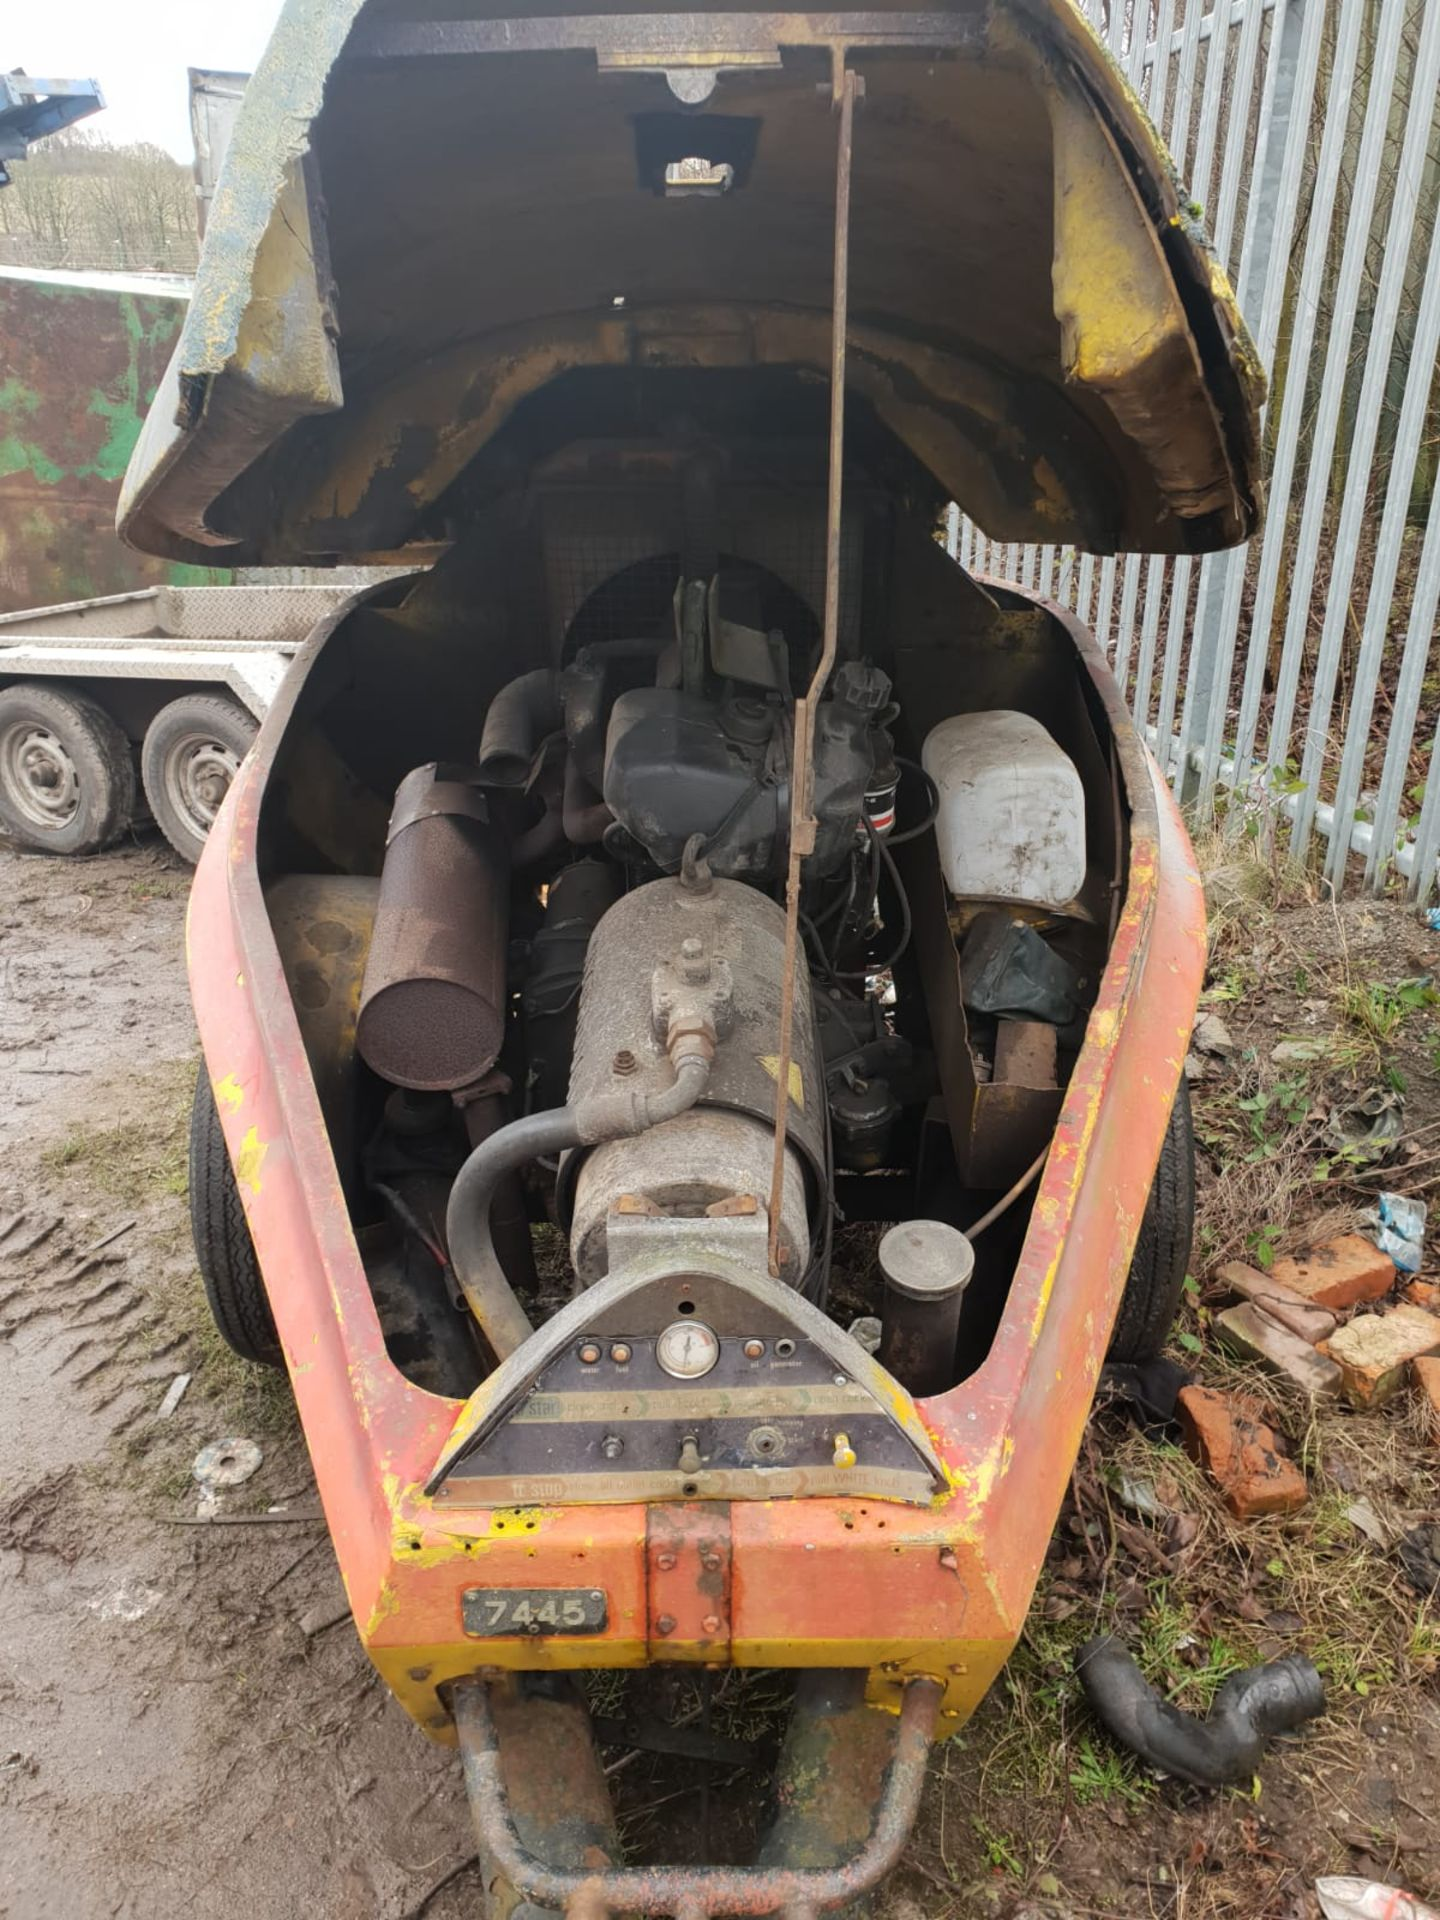 Lot 73 - 4-CYLINDER DIESEL HYDROVANE 7445 AIR COMPRESSOR, RUNS AND MAKES AIR *NO VAT*